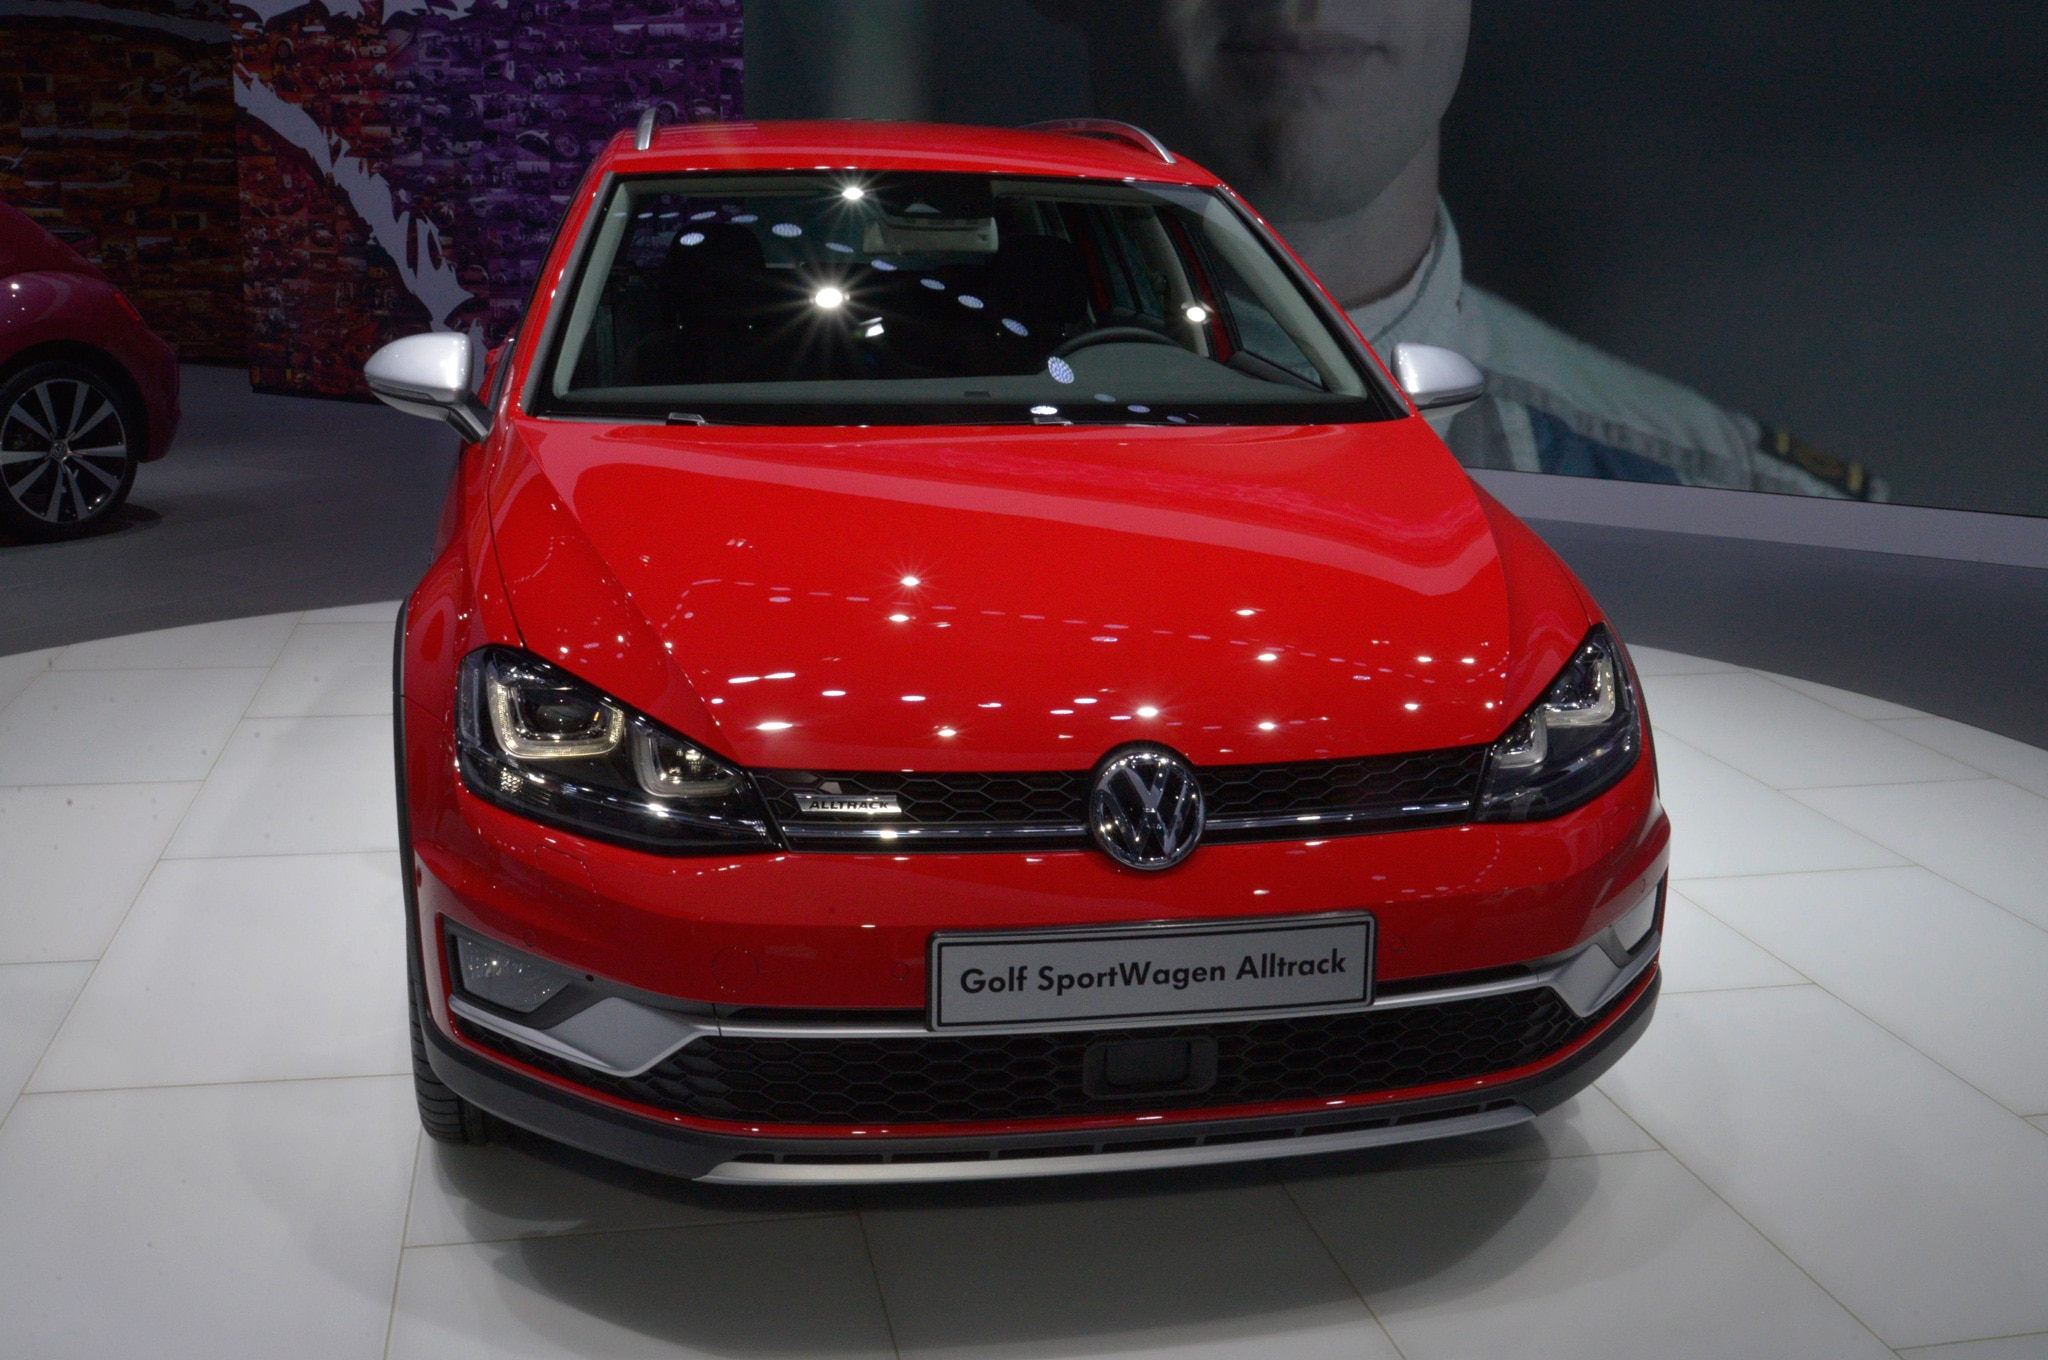 2017 volkswagen golf sportwagen alltrack revealed for u s market. Black Bedroom Furniture Sets. Home Design Ideas